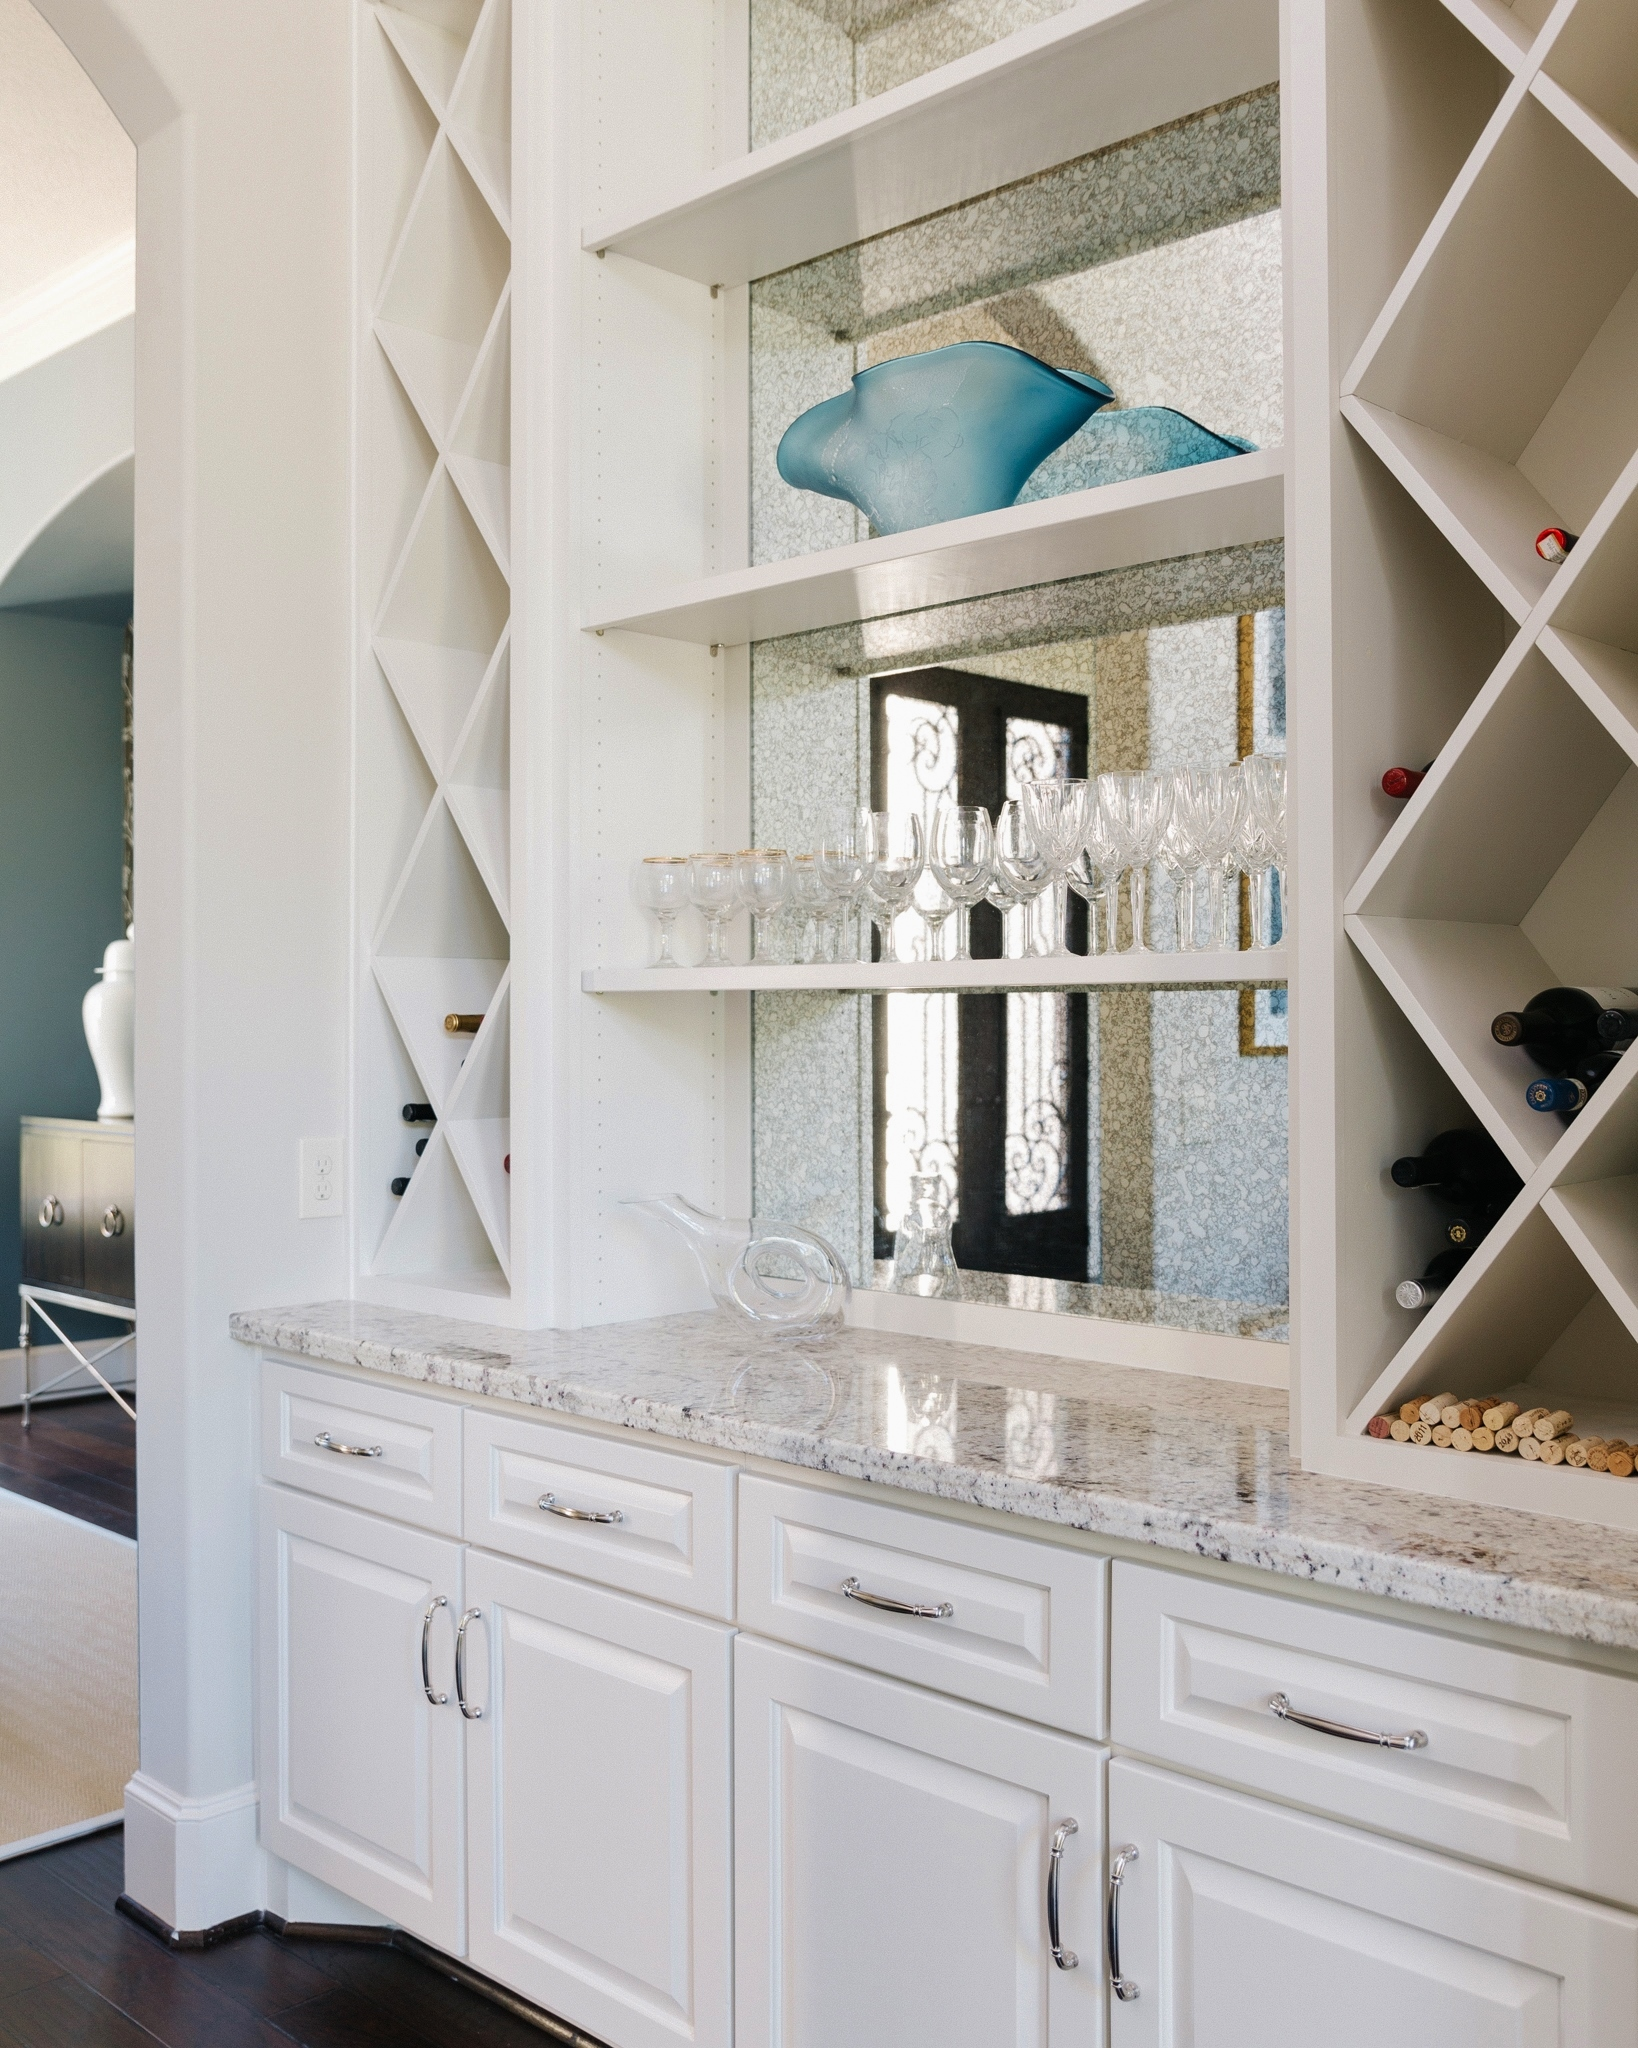 AFTER - Home wine bar transformation, Designer: Carla Aston,  Photographer: Colleen Scott | #remodeling #cabinetry #butlerspantry